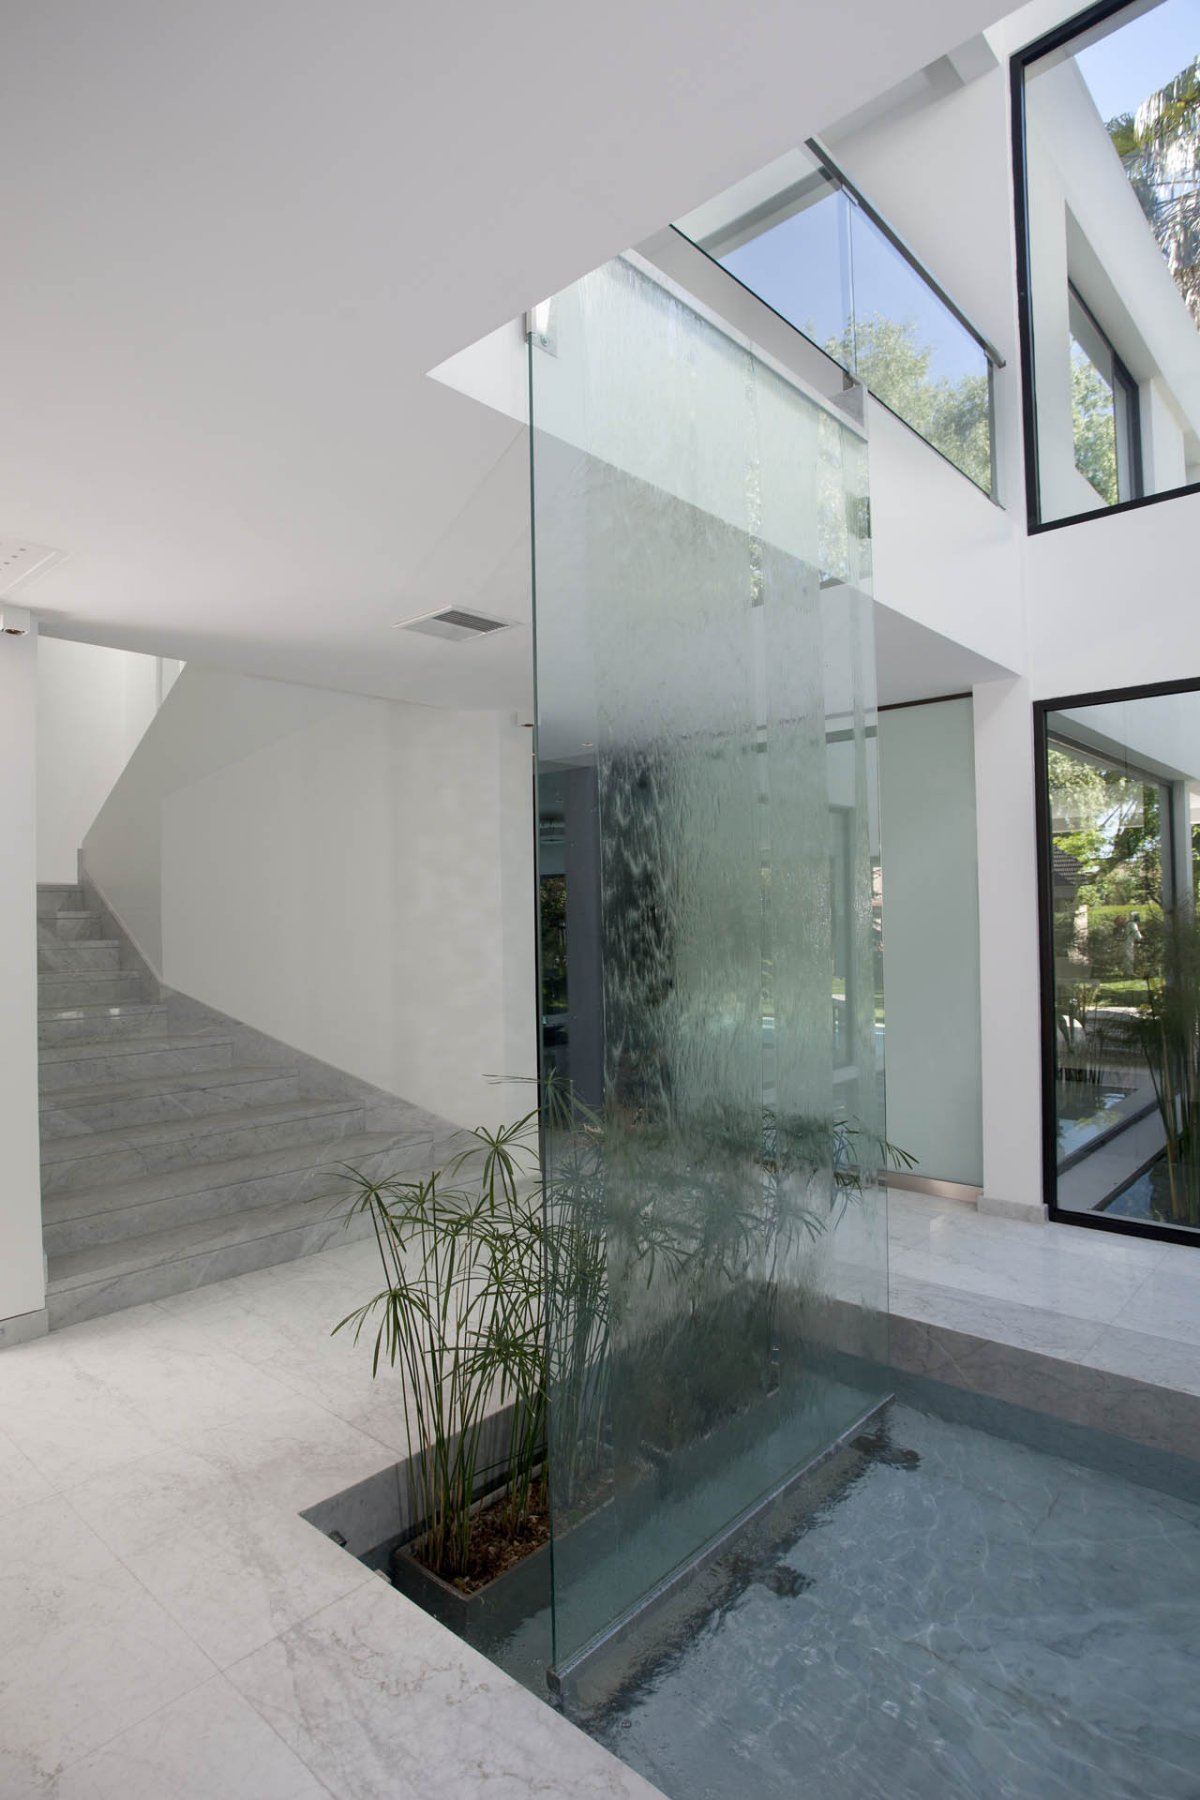 Plants, Waterfall, Water Feature, Modern House in Pilar, Buenos Aires